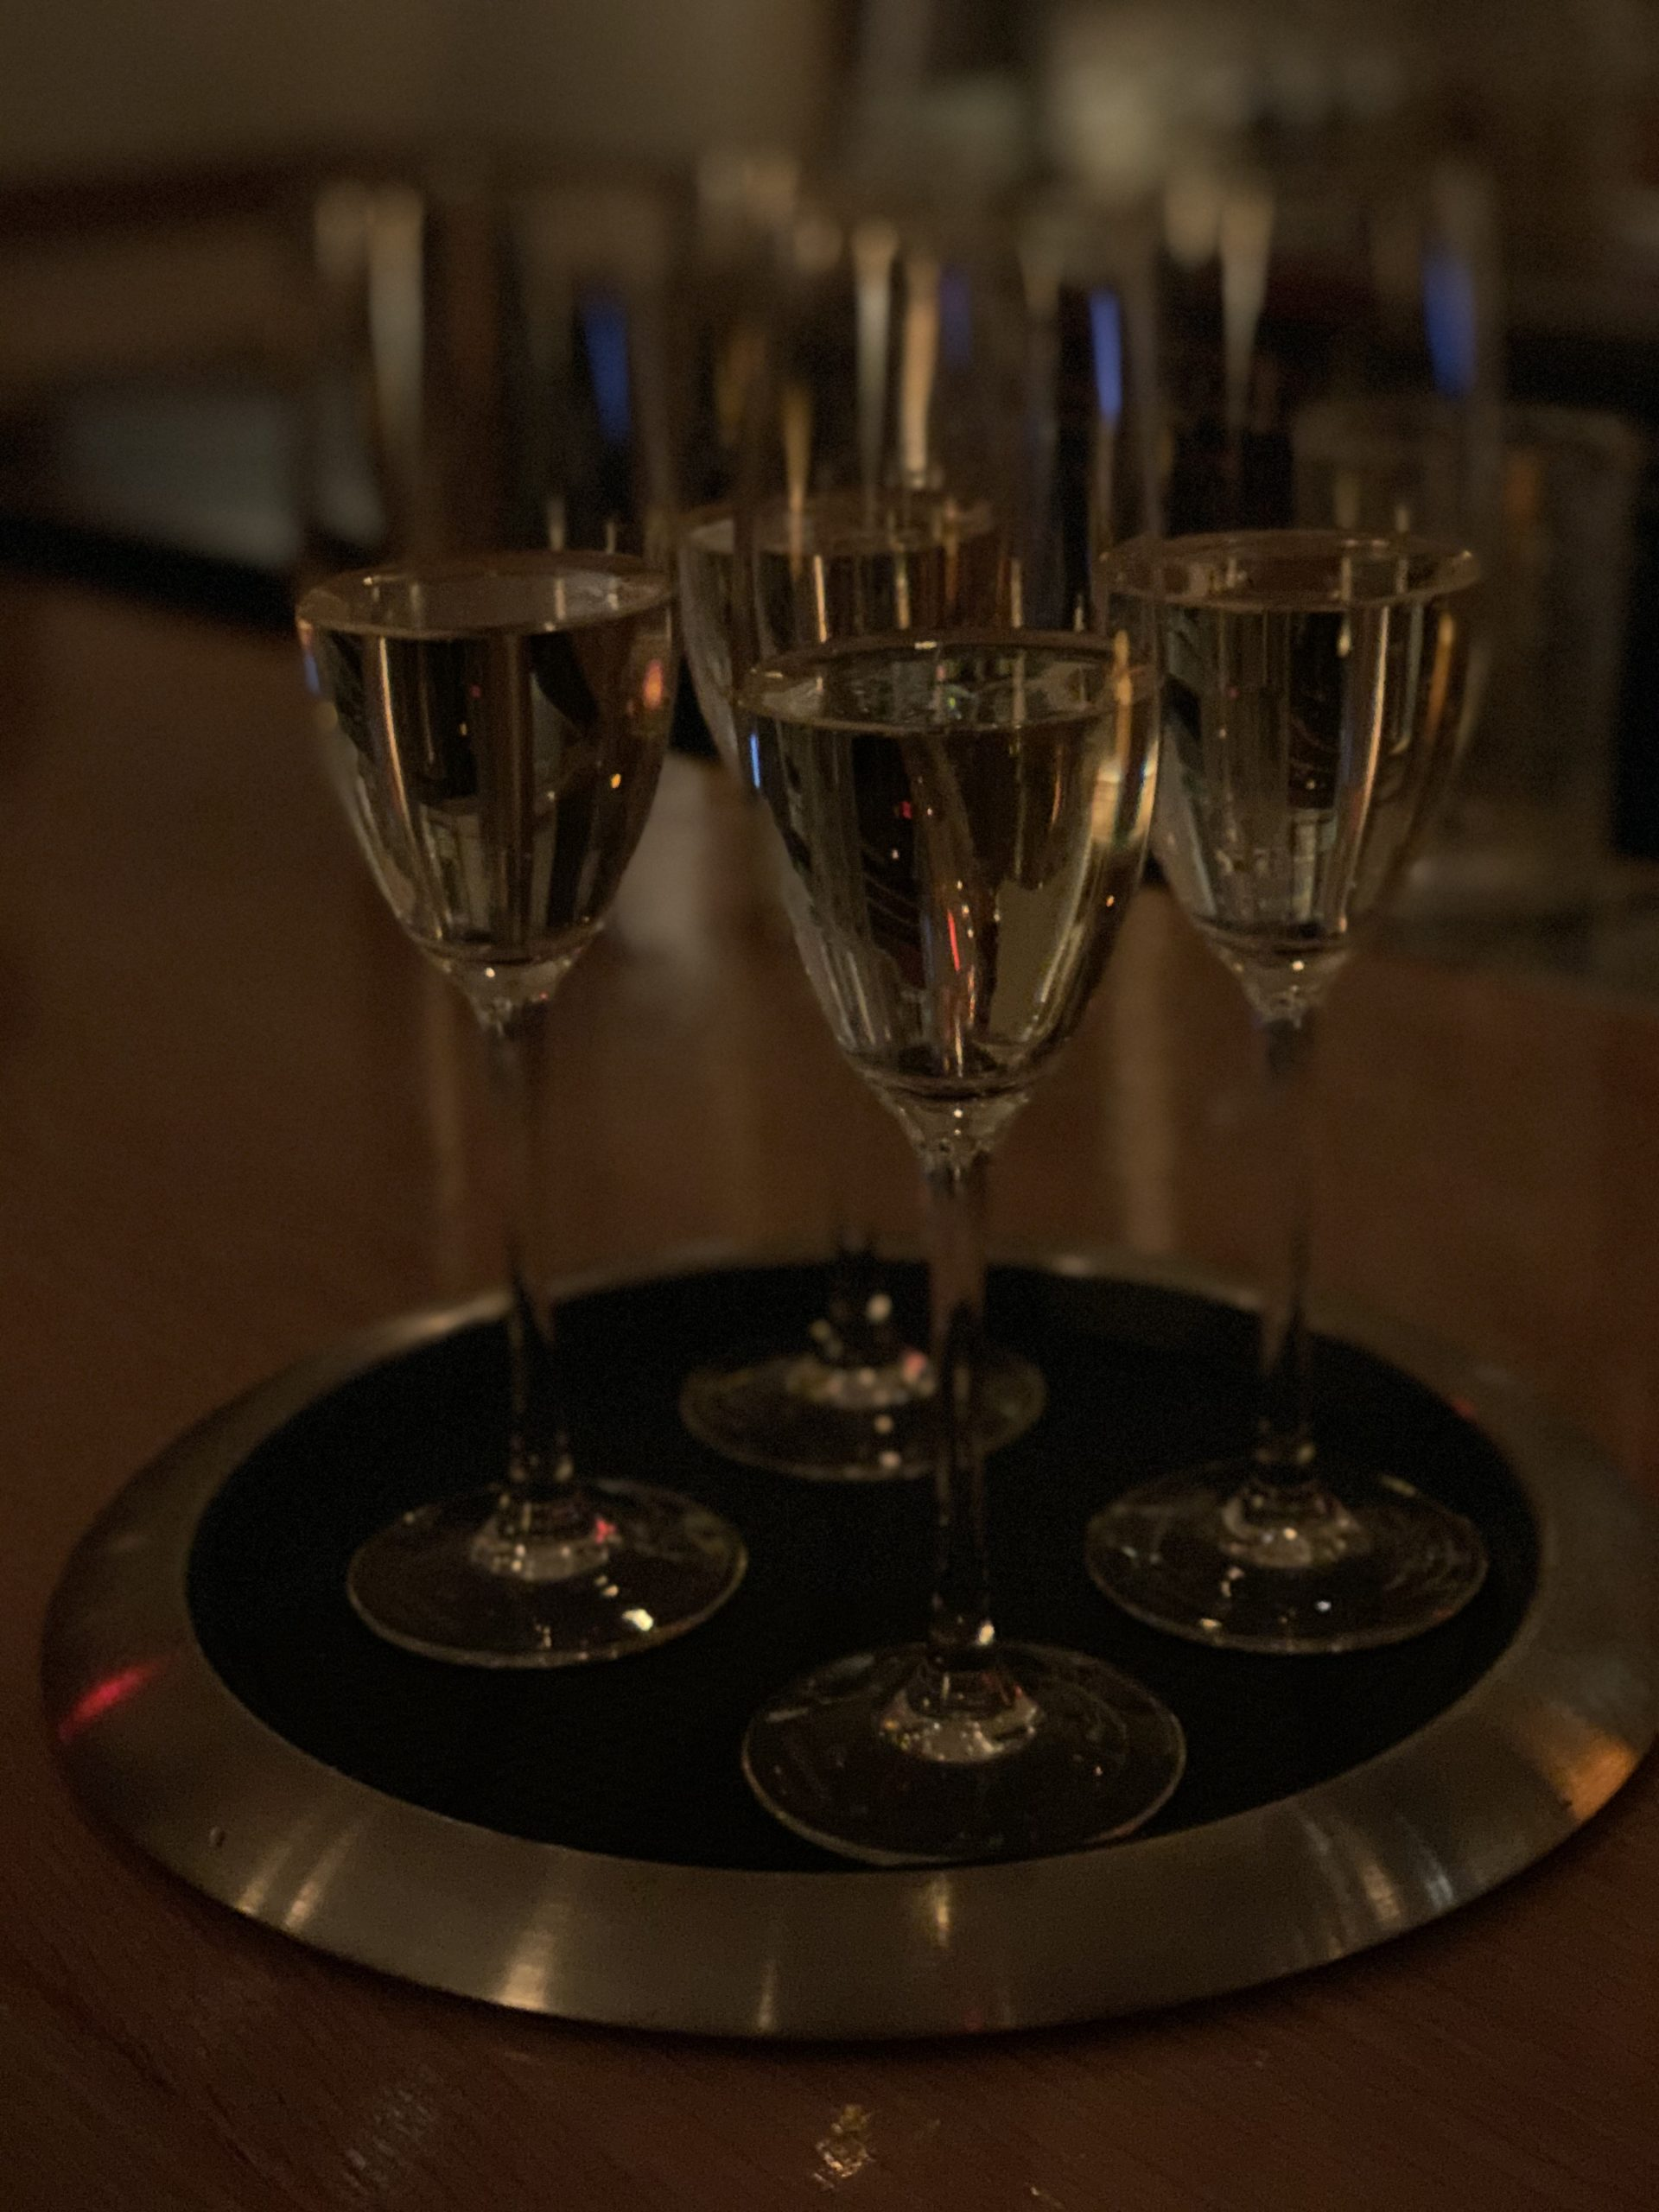 Prosecco was flowing at the Game Bird dinner at Nick & Toni's last Thursday.